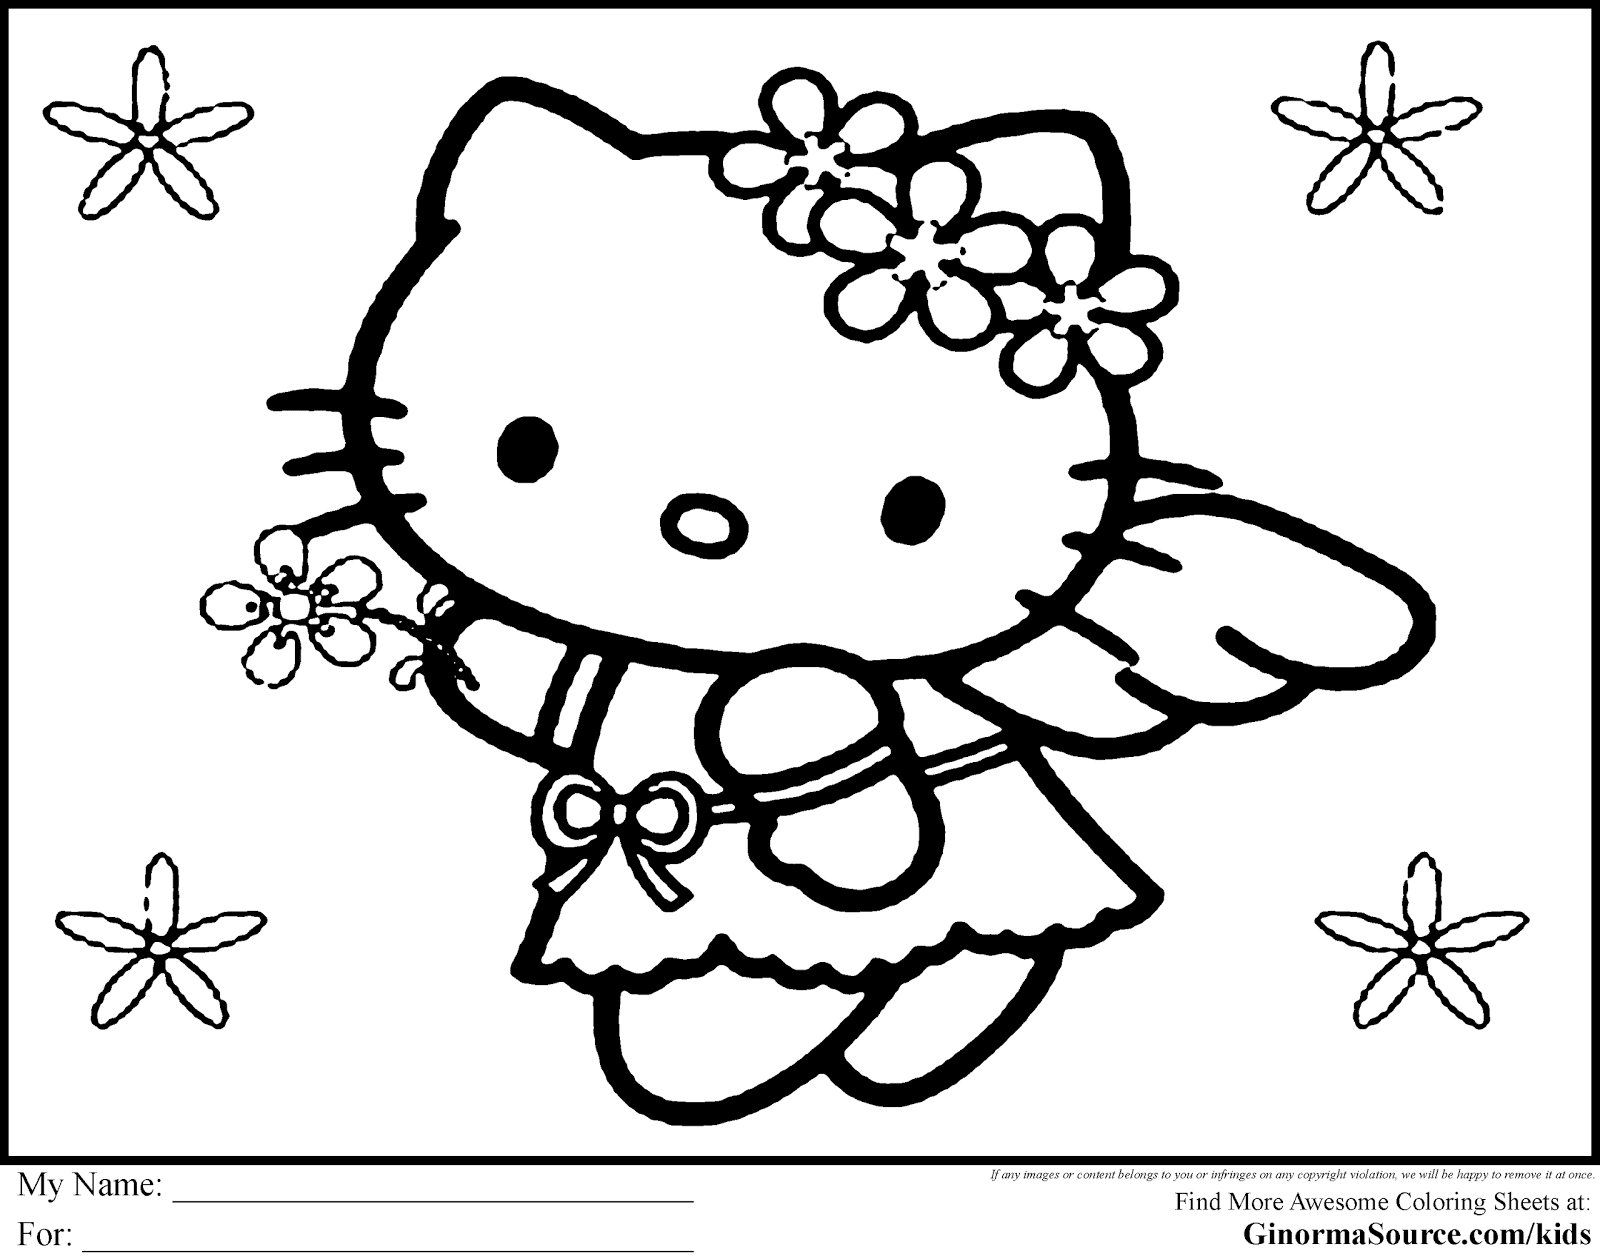 Top 10 Hello Kitty Zombie Halloween Coloring Pages Image